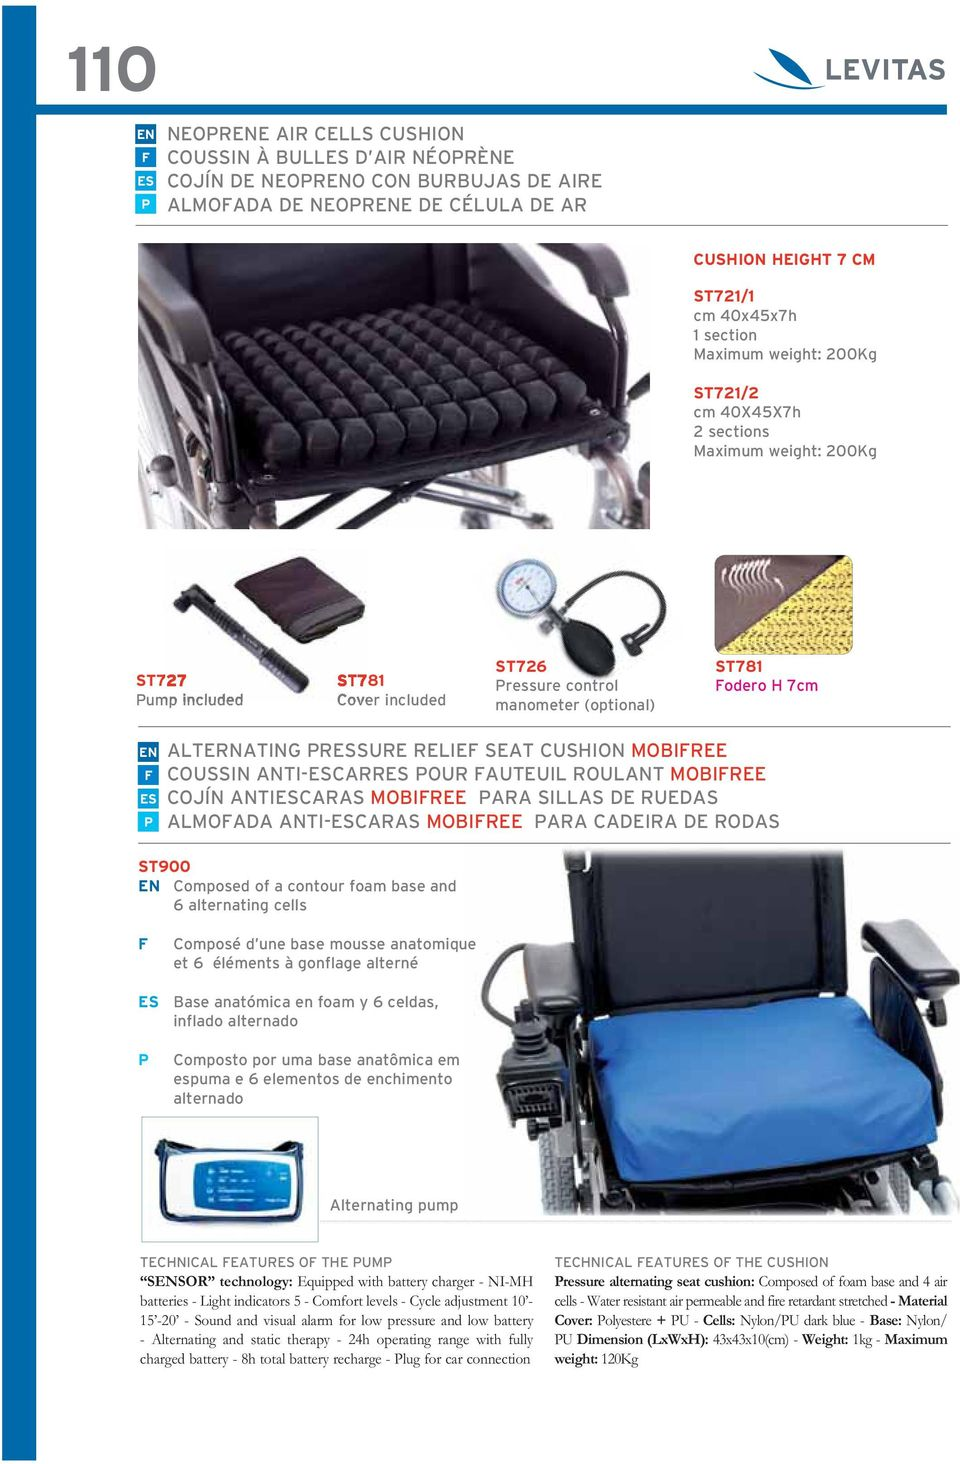 Plug for car connection Pressure alternating seat cushion: Composed of foam base and 4 air cells - Water resistant air permeable and fire retardant